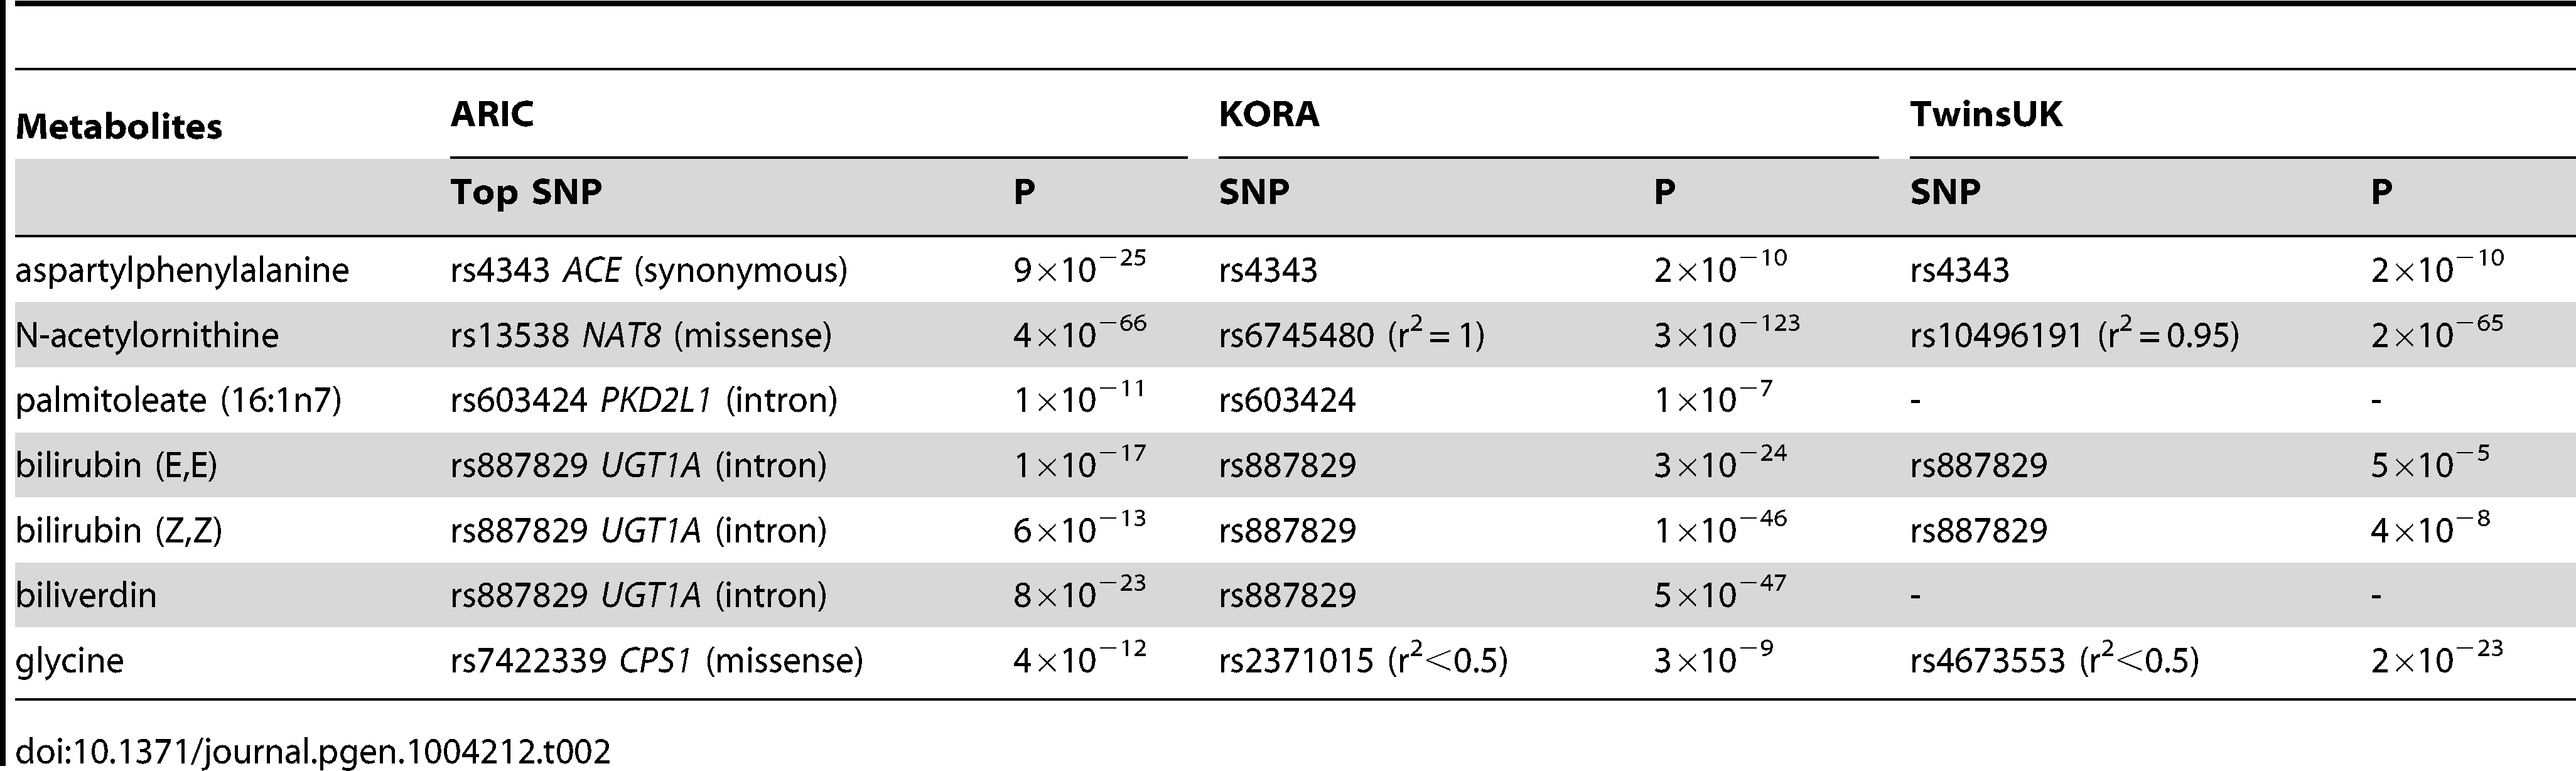 A comparison of significant common variant-metabolite association among ARIC, KORA and TwinsUK studies.